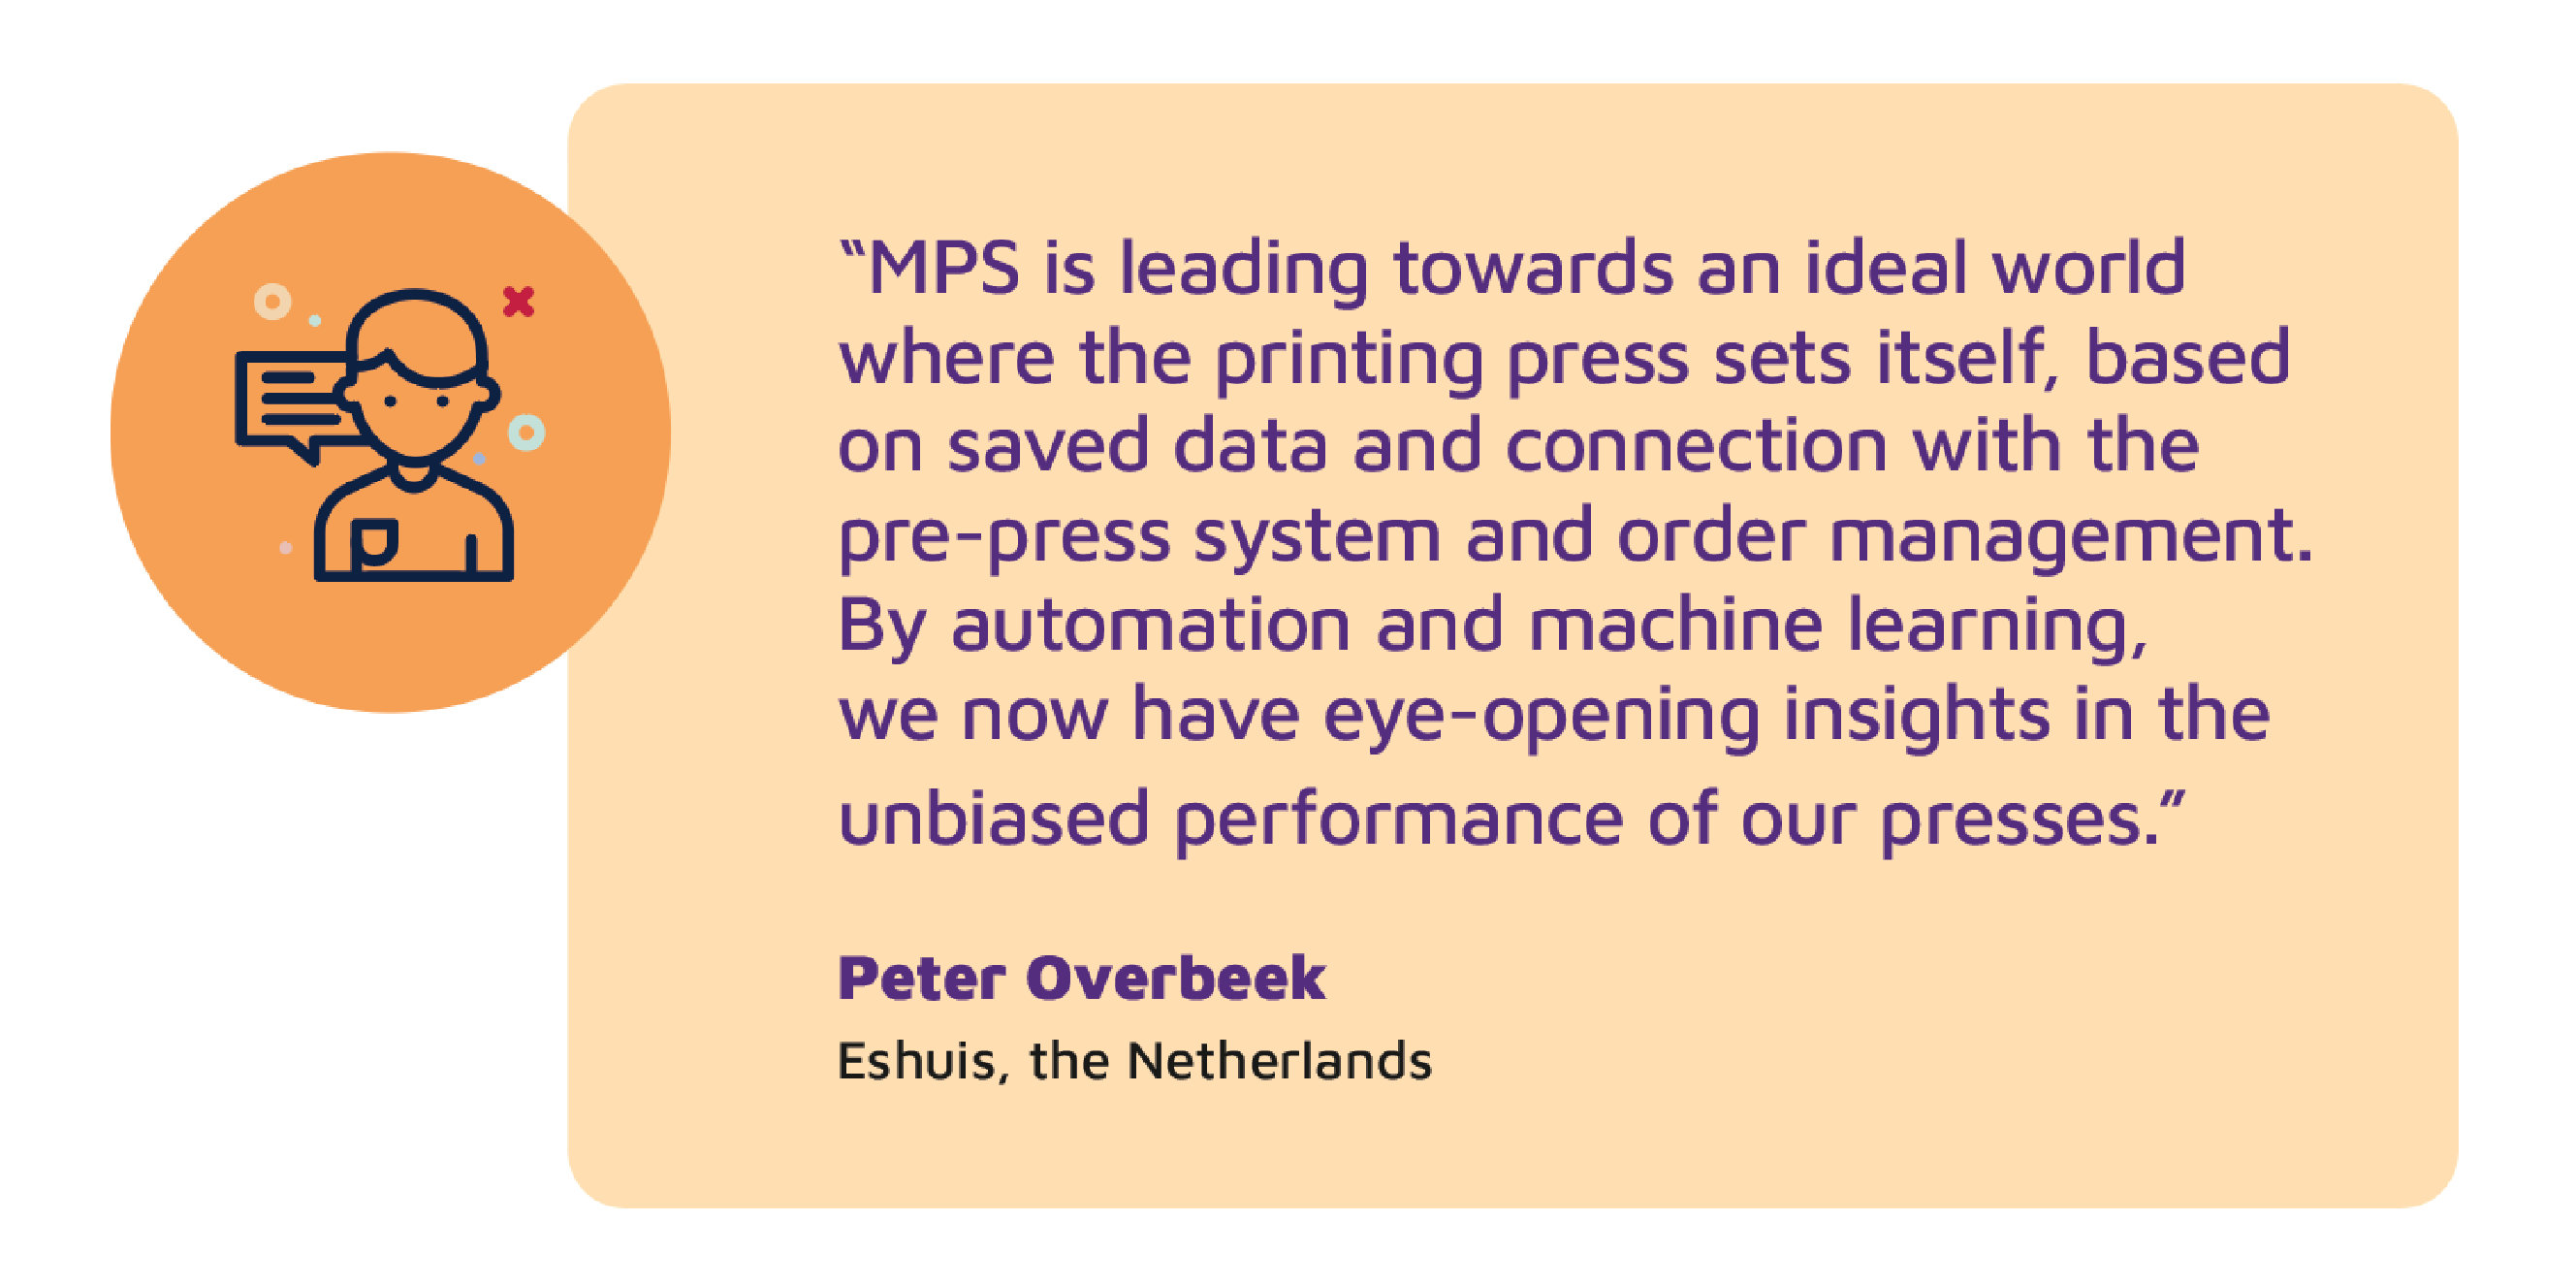 """""""MPS is leading towards an ideal world where the printing press sets itself, based on saved data and connection with the pre-press system and order management. By automation and machine learning, we now have eye-opening insights in the unbiased performance of our presses."""" Peter Overbeek, Eshuis, the Netherlands"""